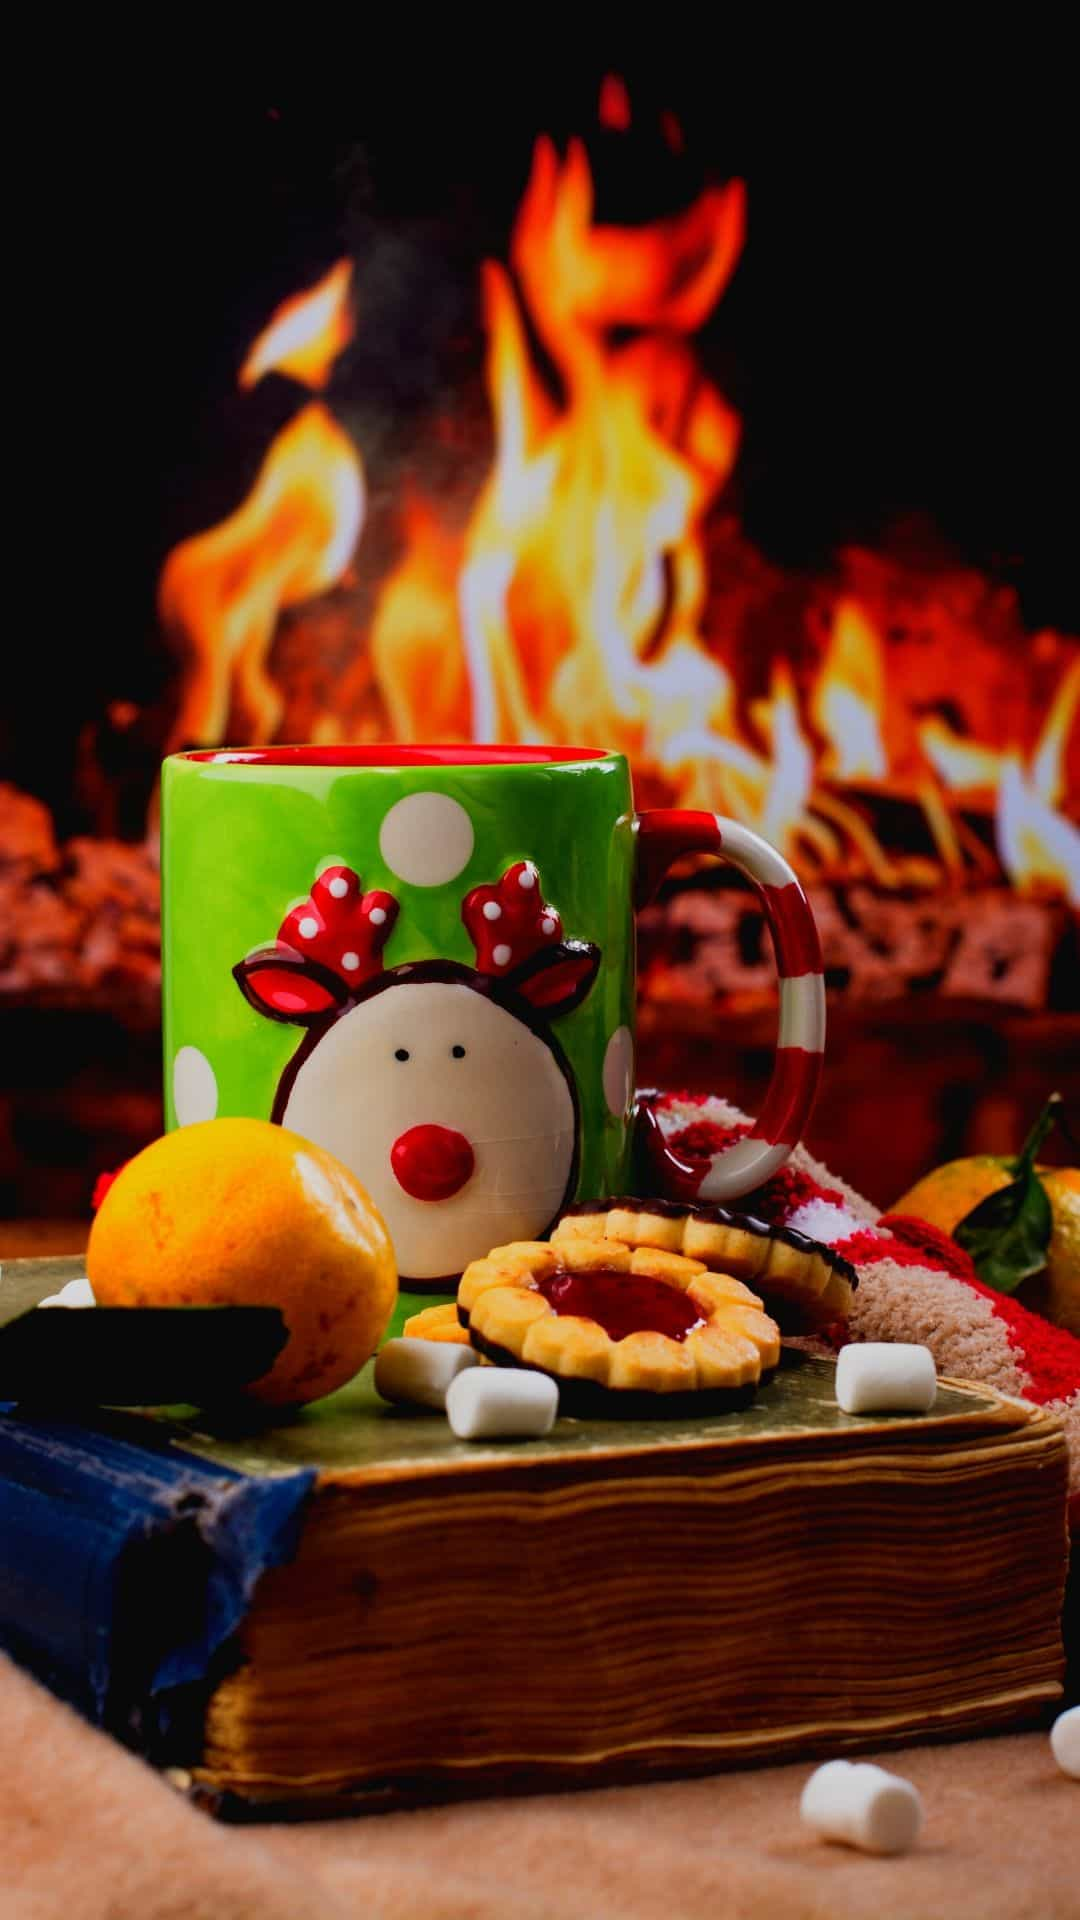 Christmas Wallpapers For iPhone Cozy Fire & Mug